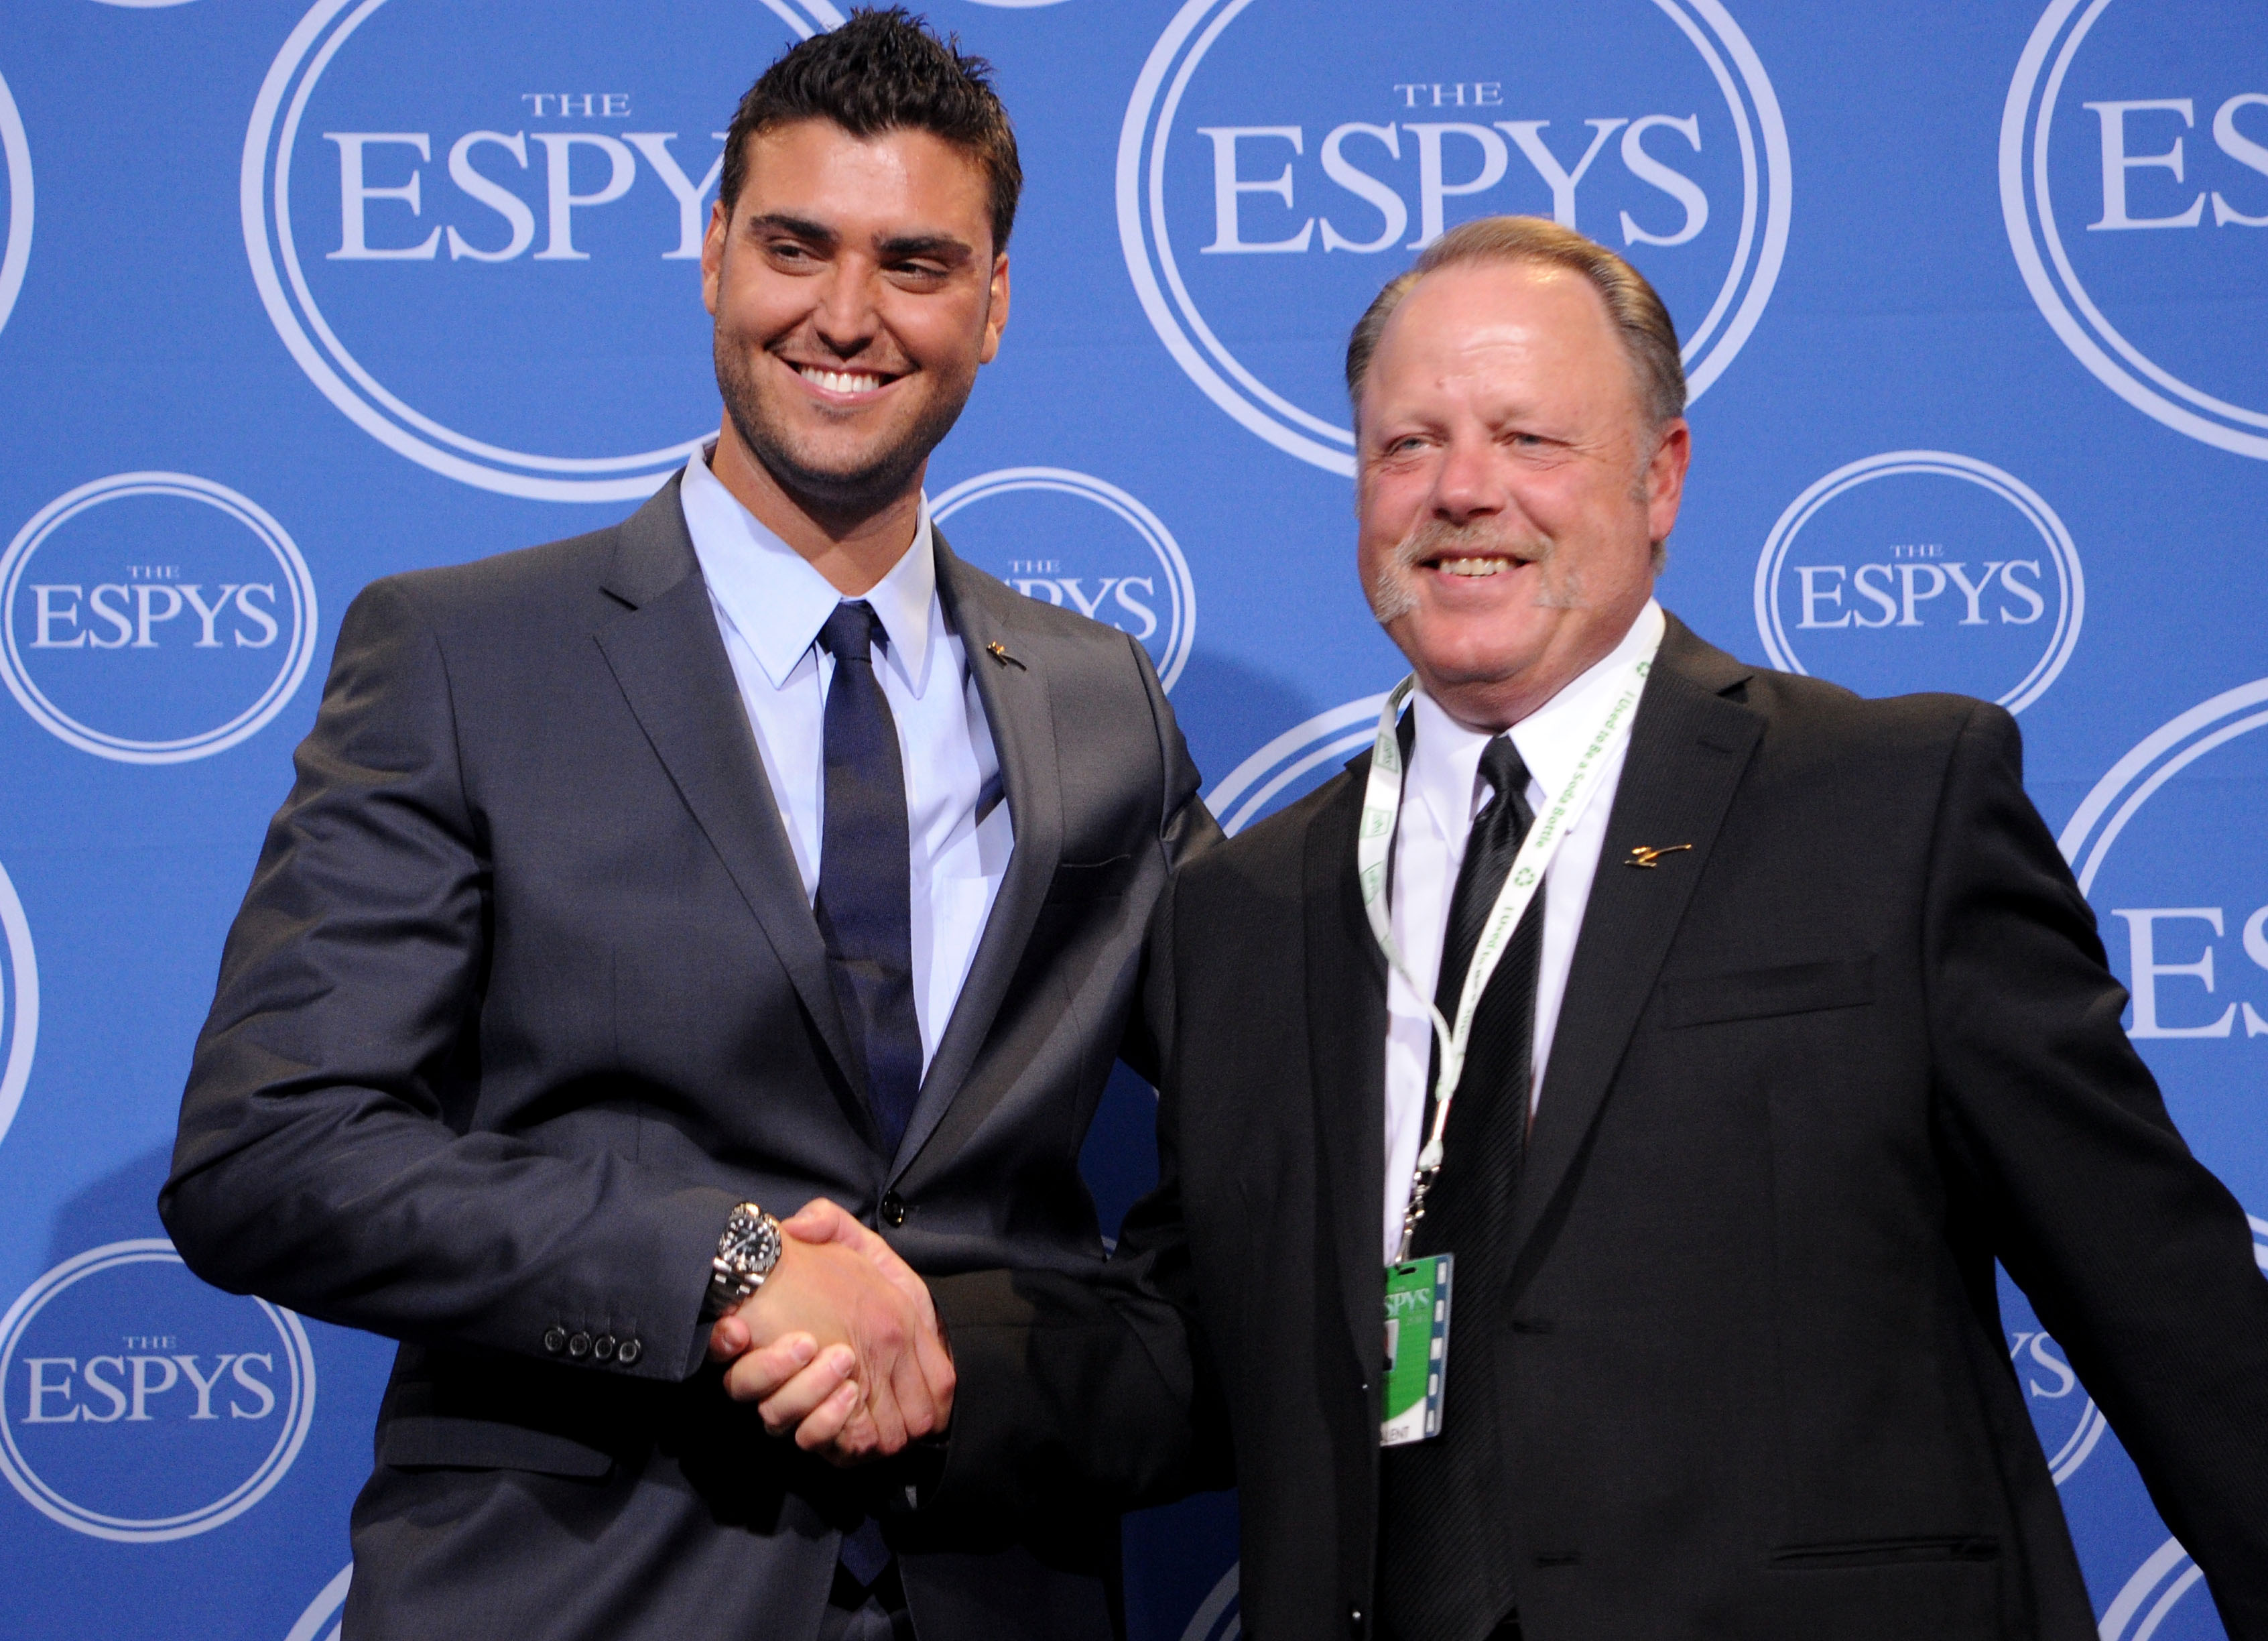 LOS ANGELES, CA - JULY 14:  MLB umpire Jim Joyce and pitcher Armando Gallaraga shake hands backstage during the 2010 ESPY Awards at Nokia Theatre L.A. Live on July 14, 2010 in Los Angeles, California.  (Photo by Jason Merritt/Getty Images)